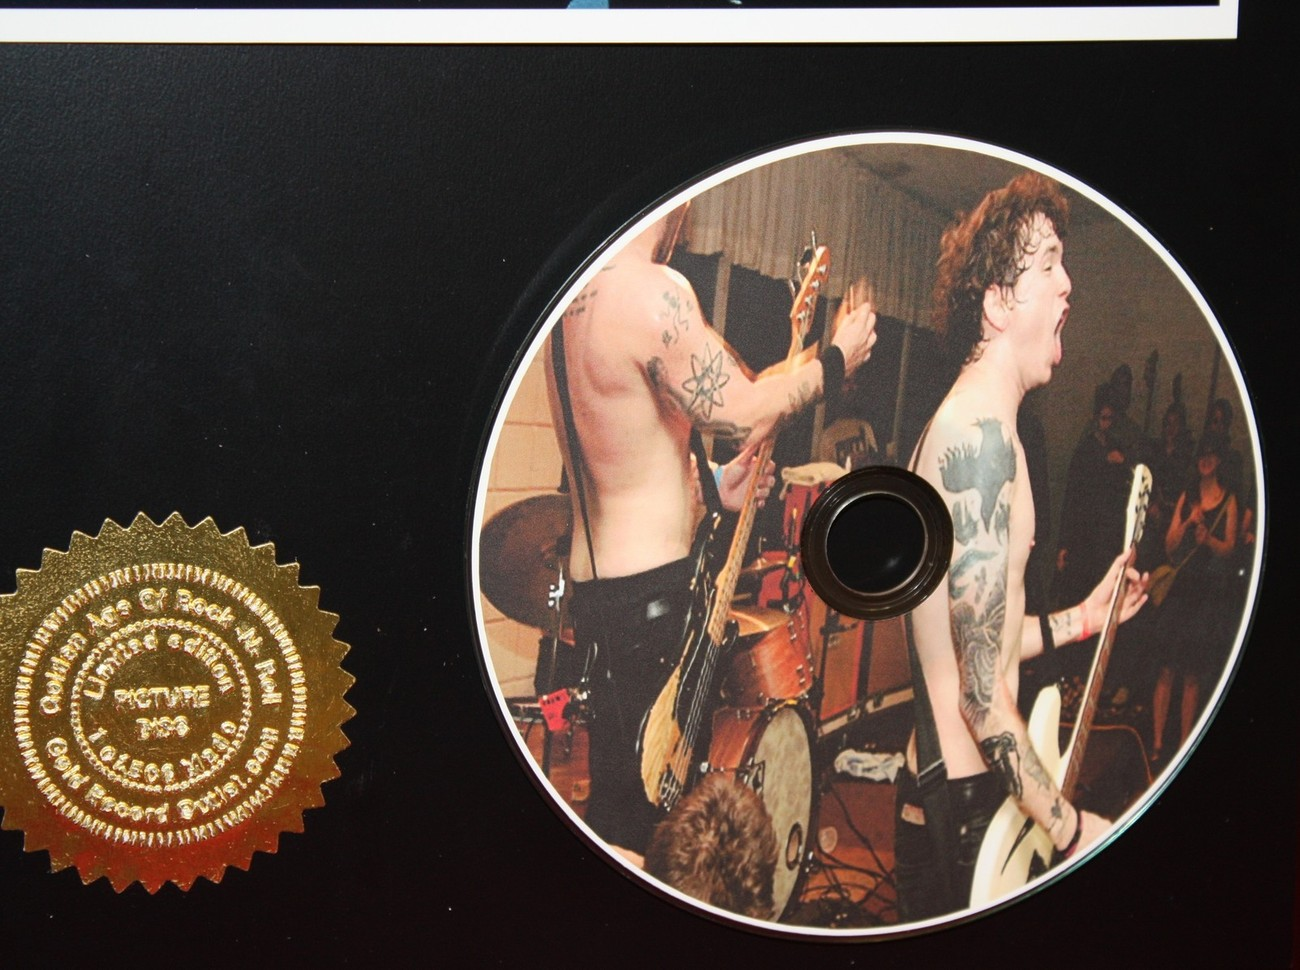 AGAINST ME LTD EDITION PICTURE CD COLLECTIBLE AWARD QUALITY DISPLAY